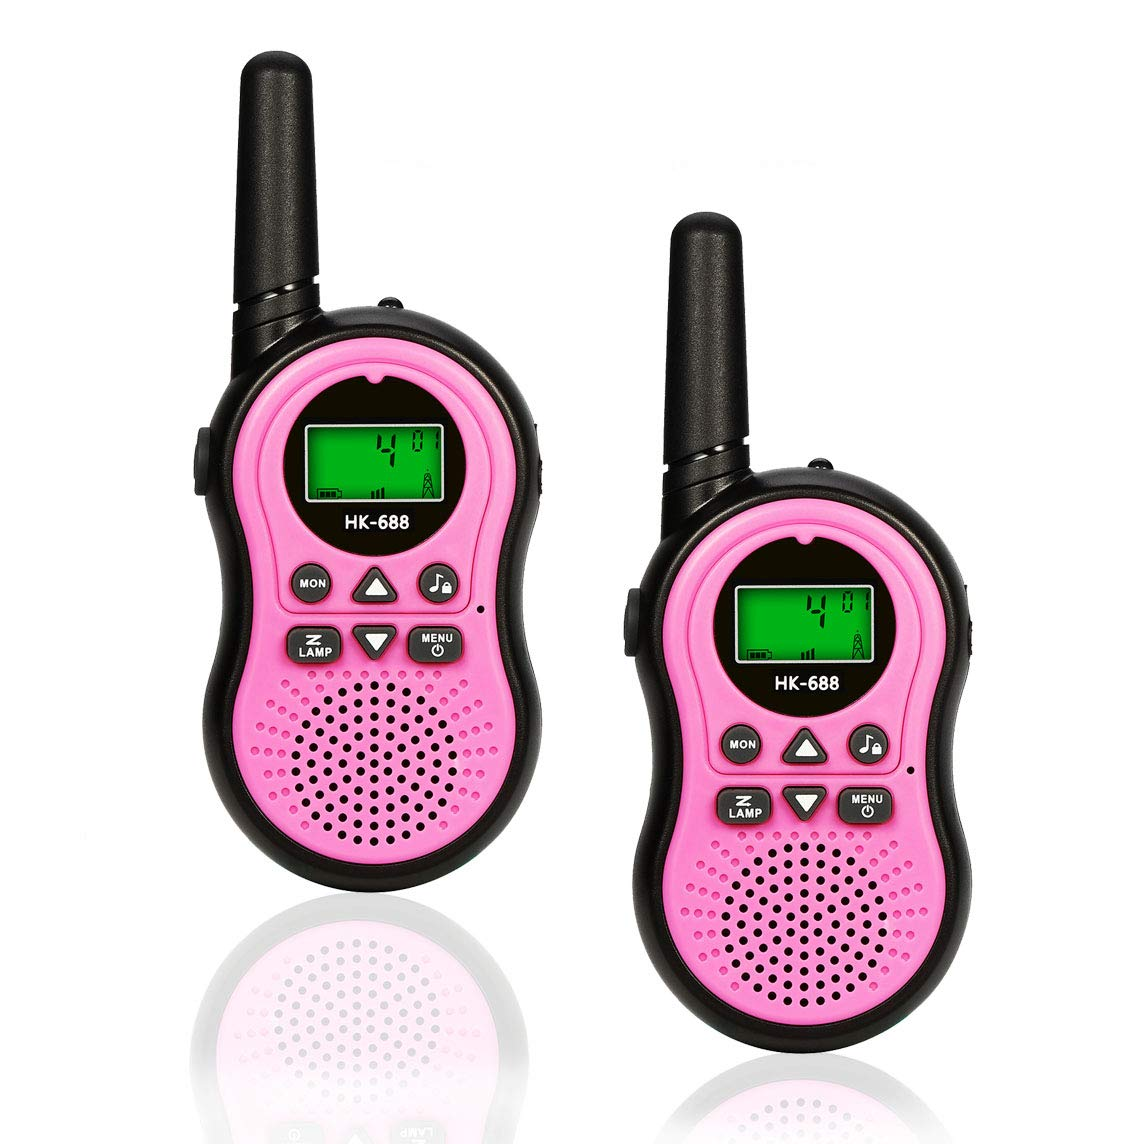 Toys for 3-12 Year Old Boys, BIBOYELF Walkie Talkies for Kids Toys for 3-12 Year Old Girls,5-9 Year Old Girl Birthday Gift,Outside Toys for Kids Outdoor Play,HK-688 1Pair(Pink) by BIBOYELF (Image #1)